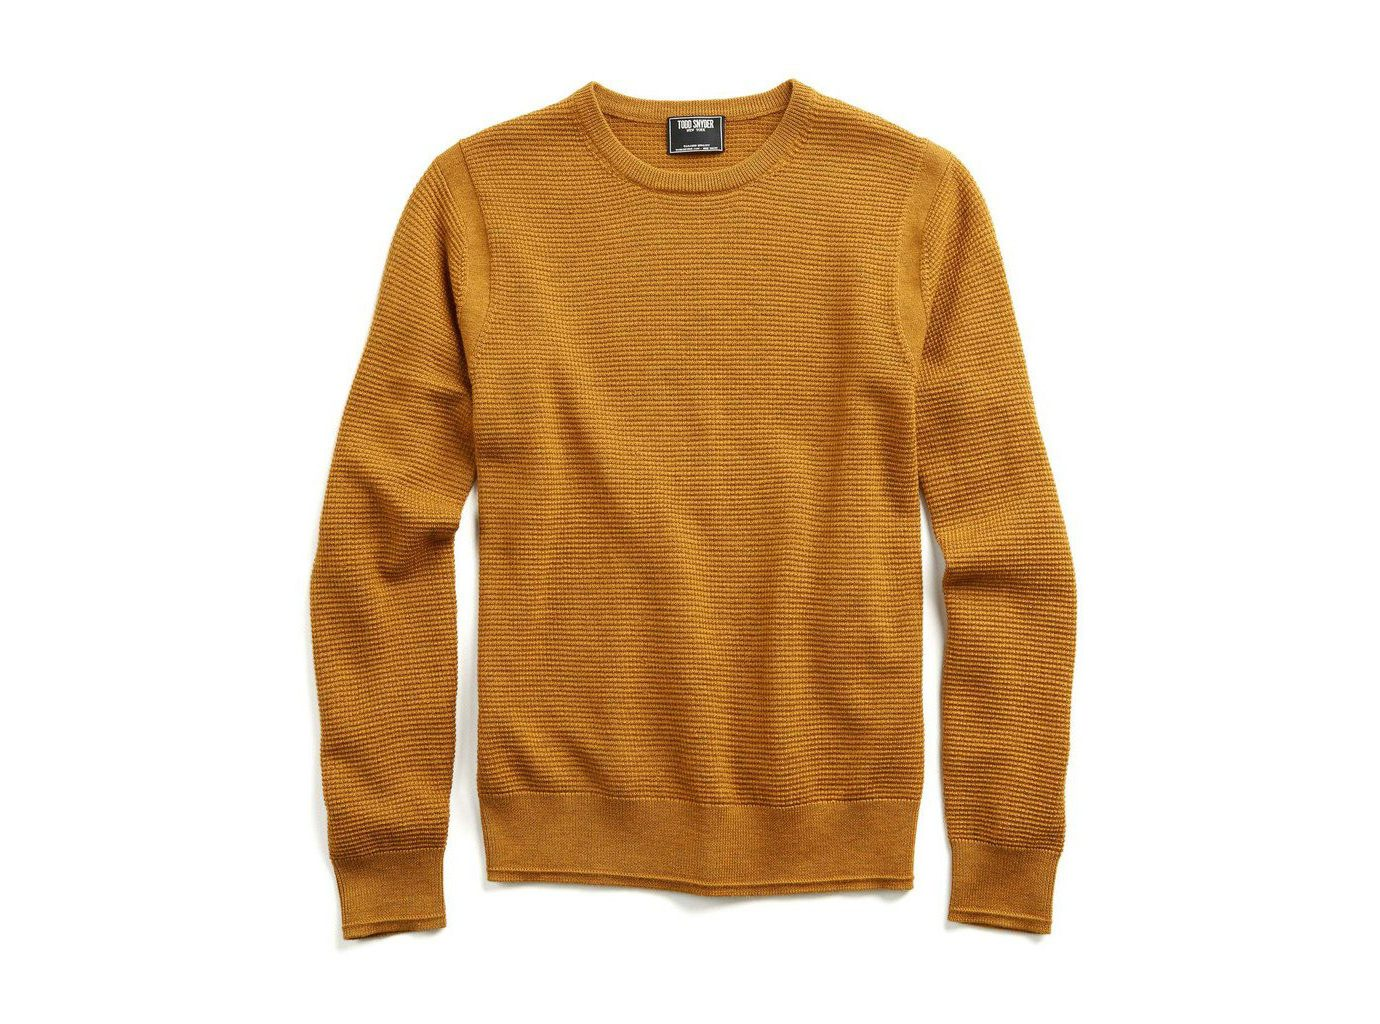 Style + Design Travel Shop man clothing yellow sweater sleeve product long sleeved t shirt woolen neck